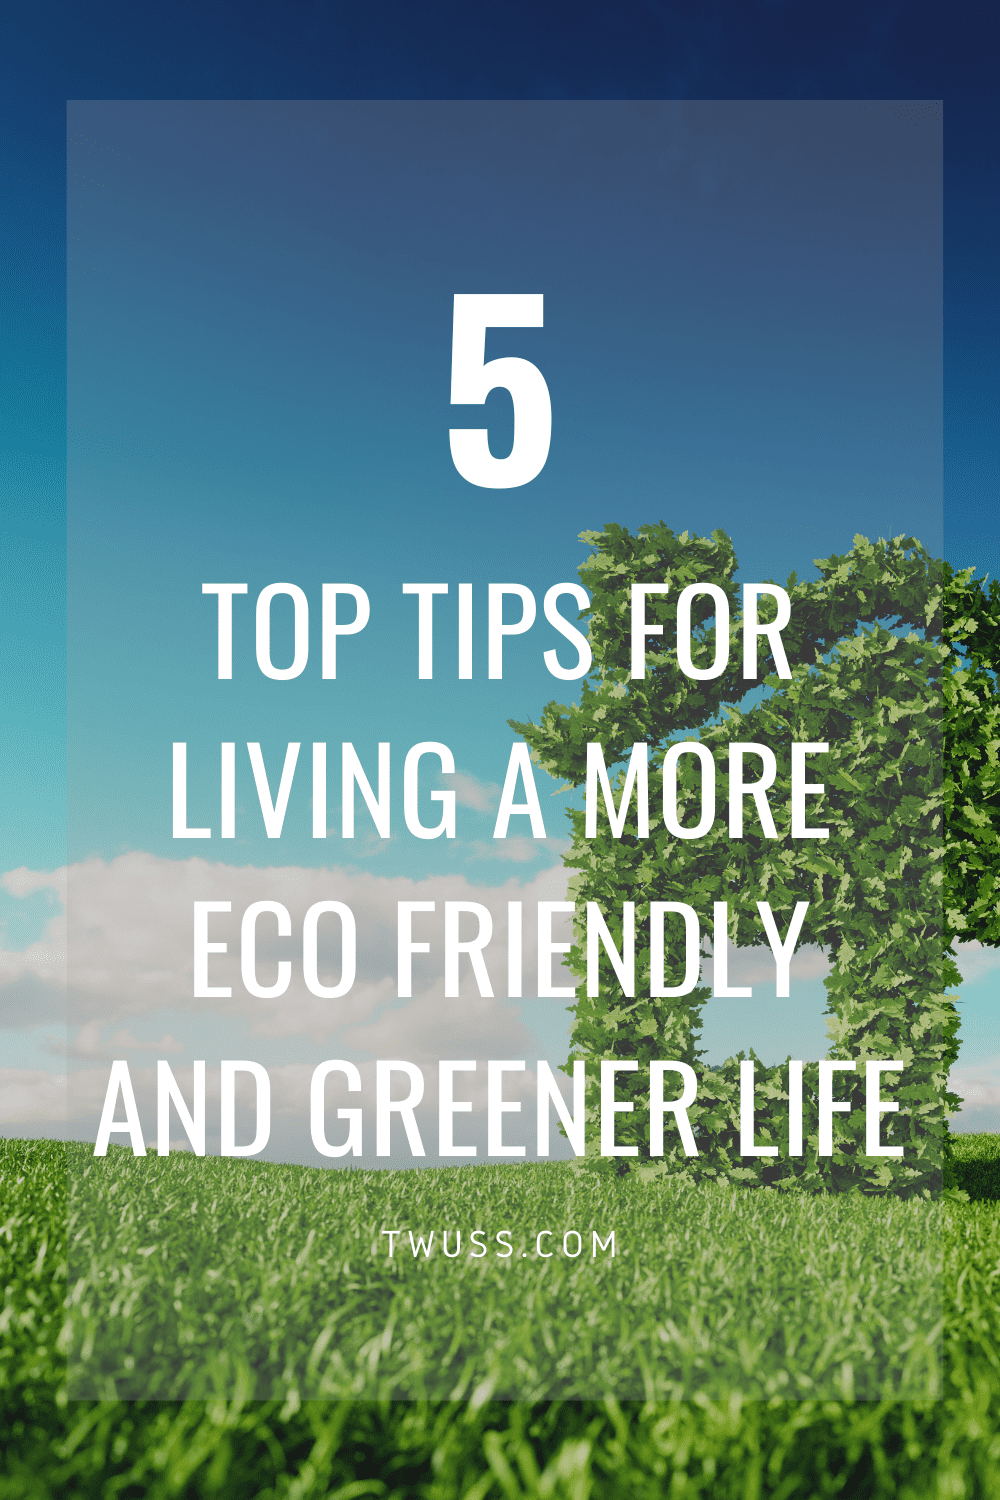 5 top tips for living a more eco friendly and greener life - READ MORE